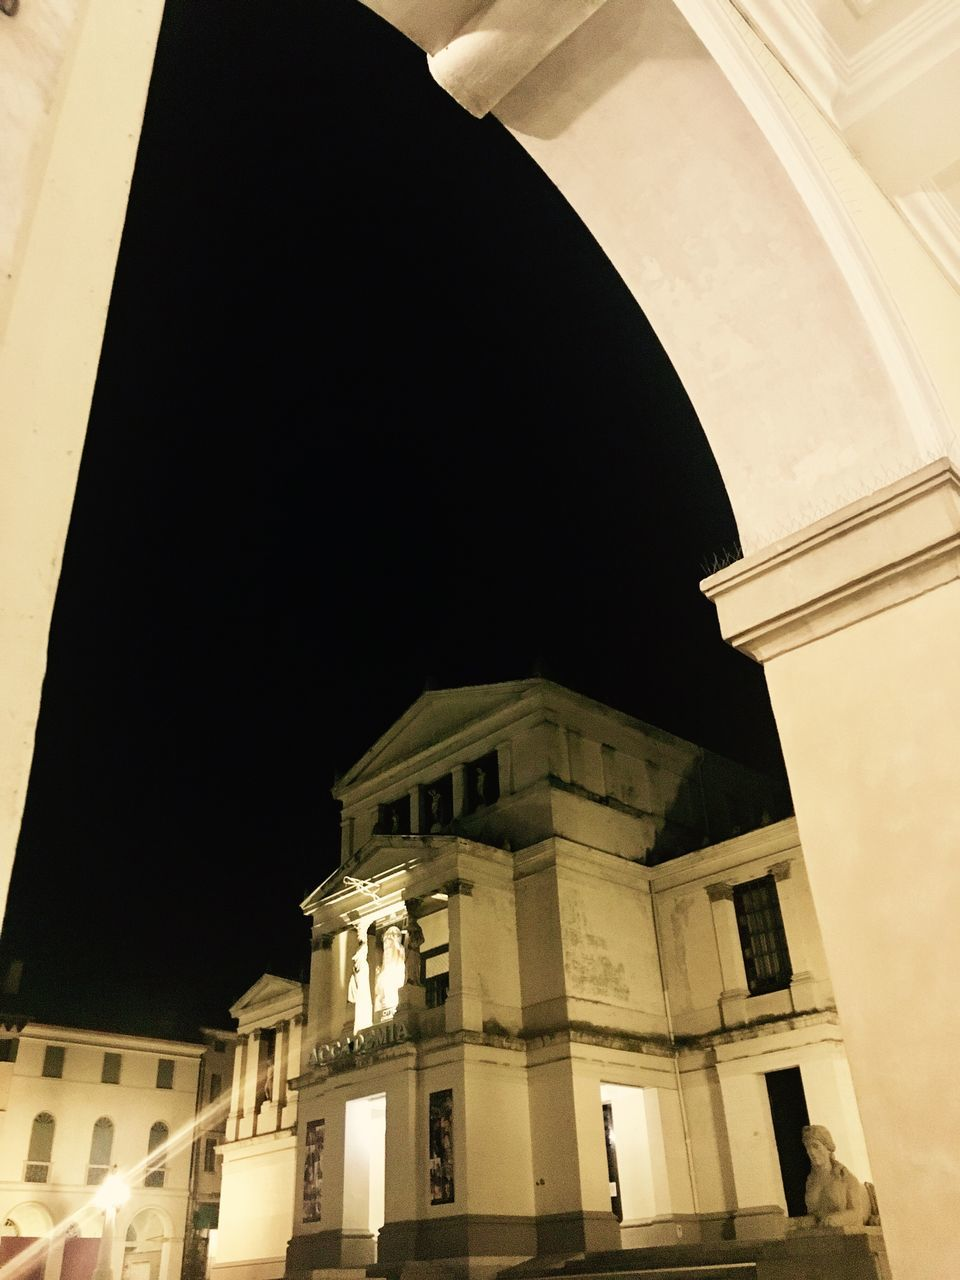 architecture, built structure, building exterior, low angle view, history, architectural column, no people, night, illuminated, dome, outdoors, sky